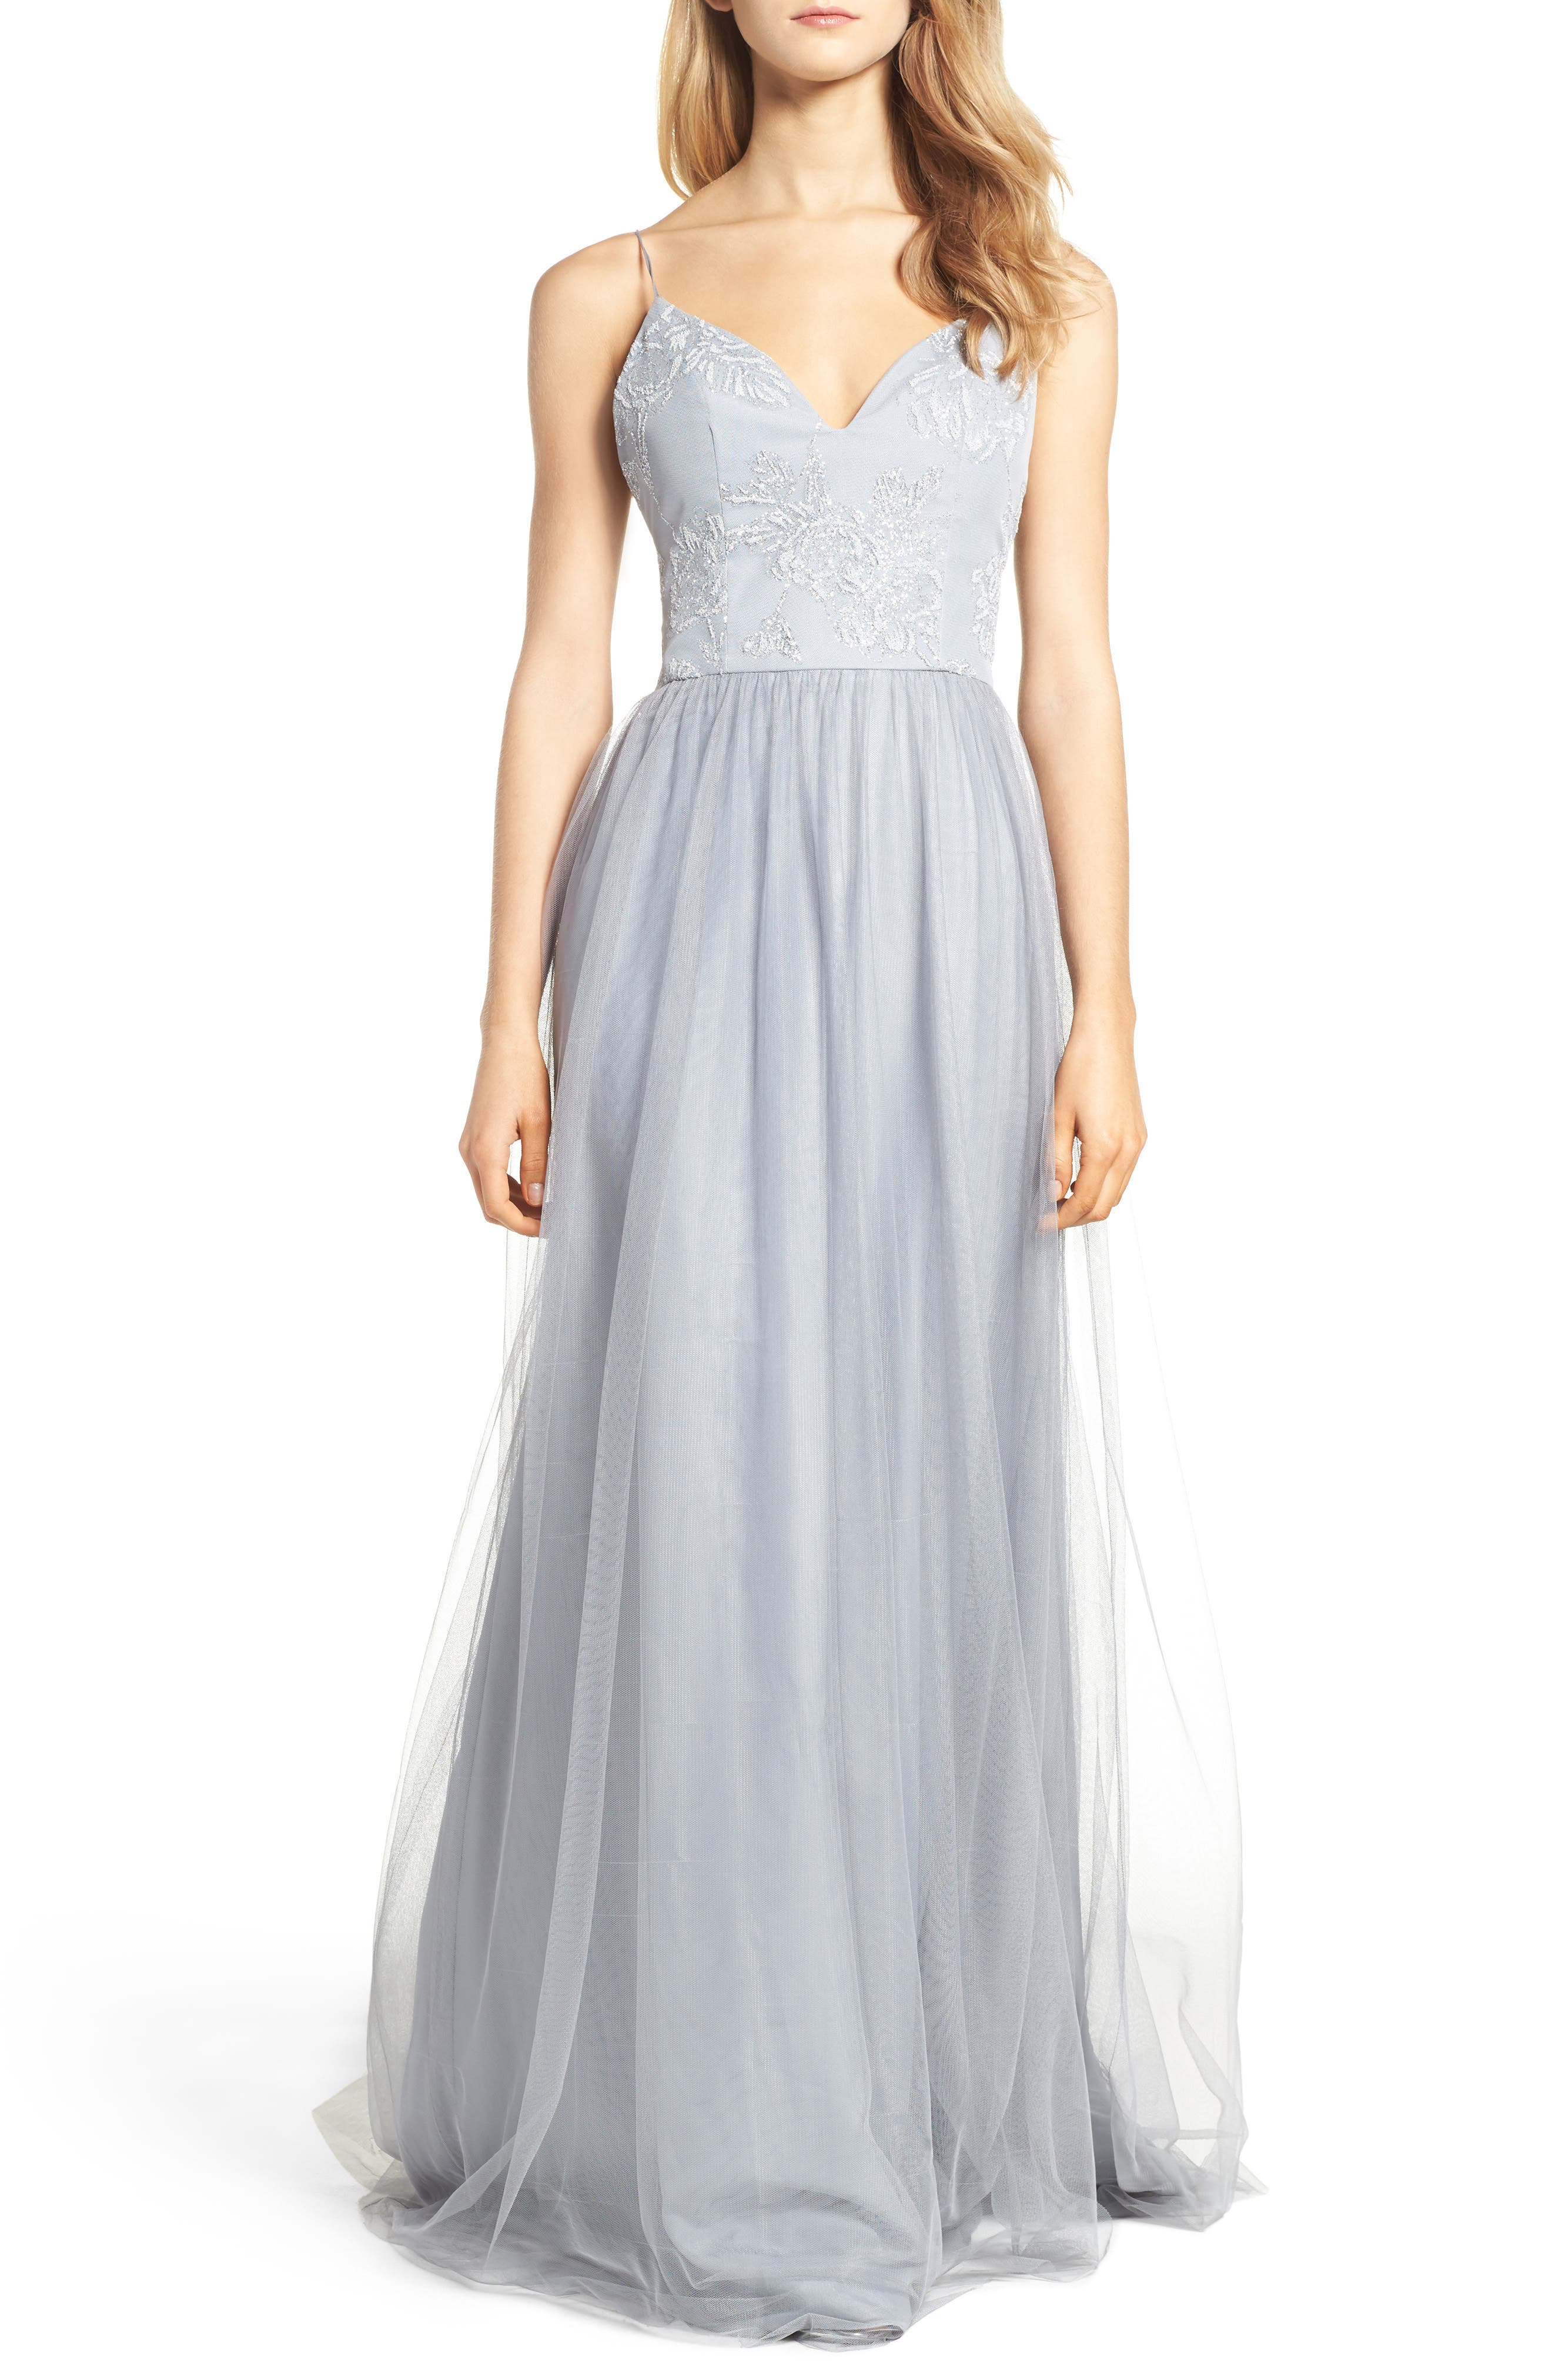 Alternate Image 1 Selected - Hayley Paige Occasions Metallic Embellished Gown